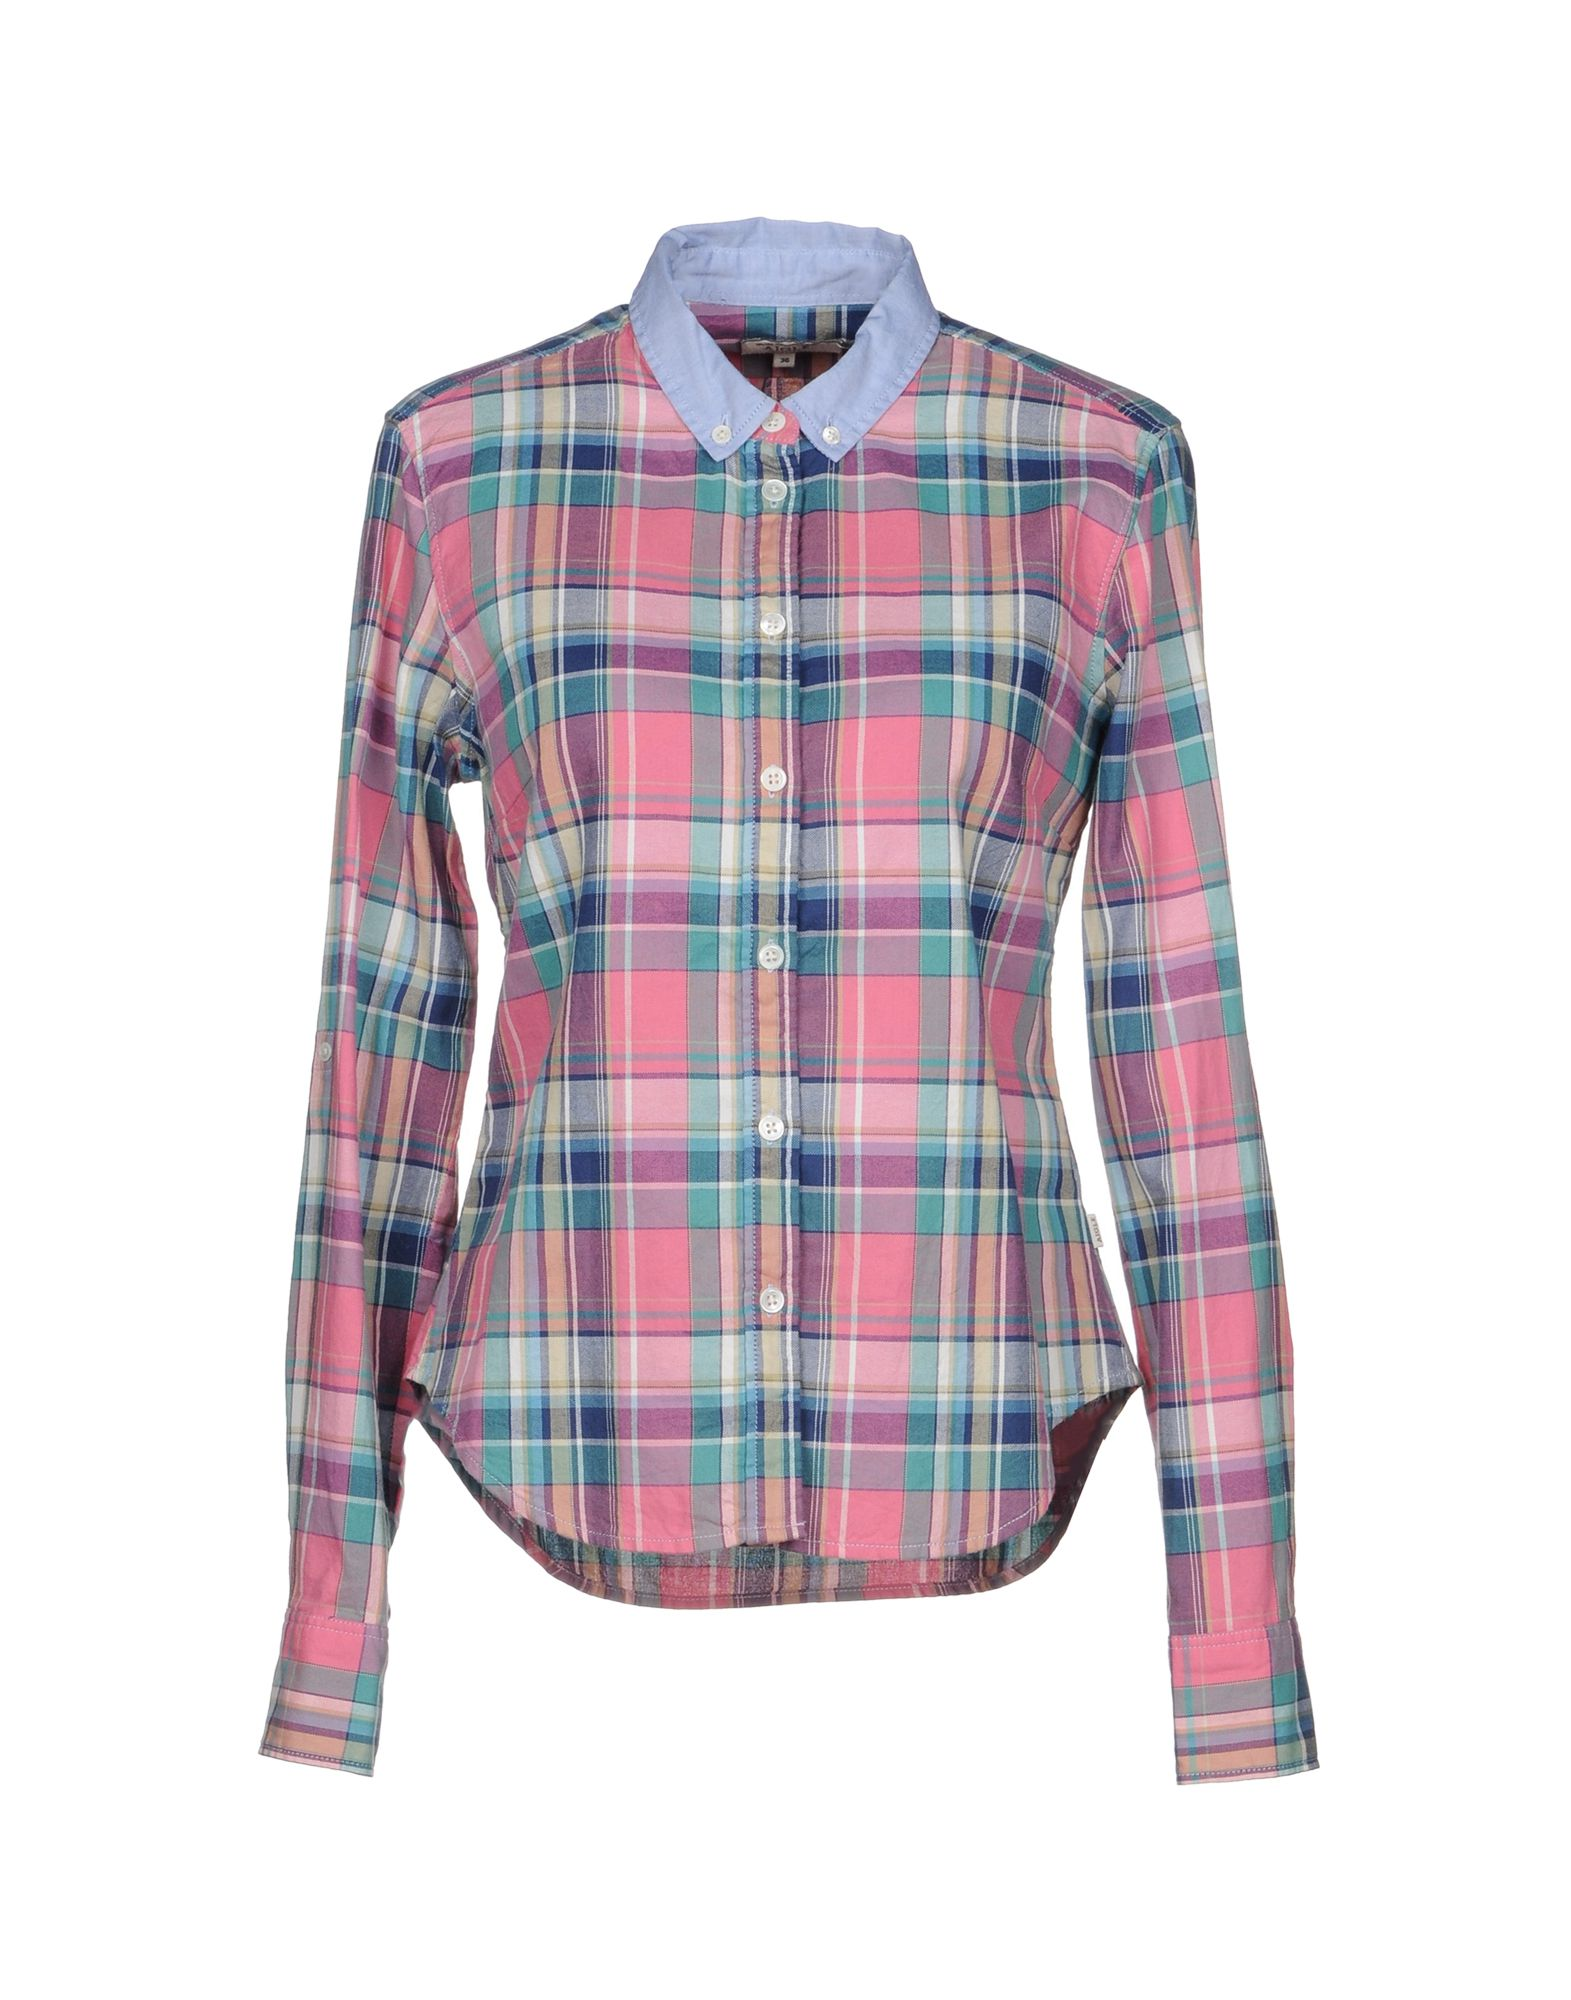 AIGLE Checked Shirt in Pink